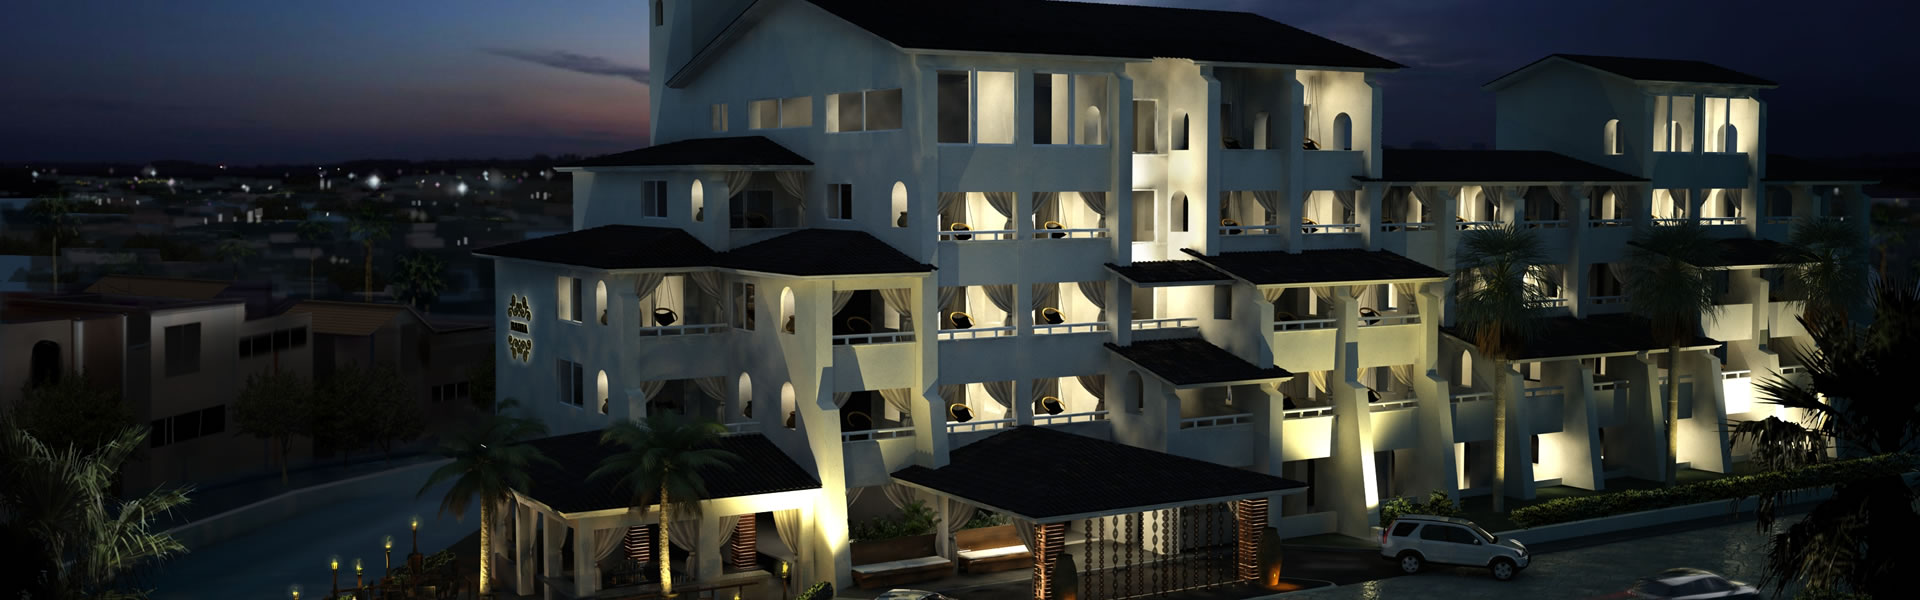 Hotels - Hotel Bahia | Projects